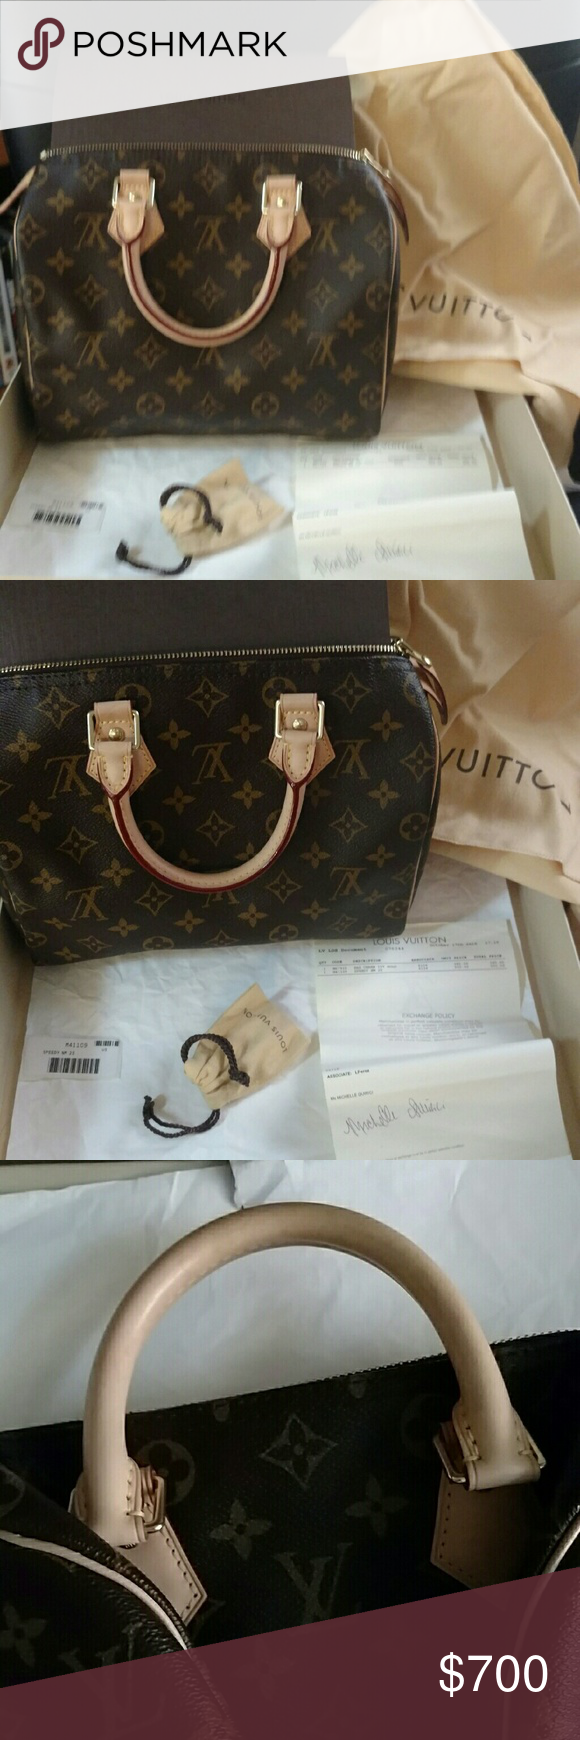 Louis Vuitton speedy 25 In perfect condition! Never carried only taken out to photo. Comes with original box and locks with keys. As well a receipt and dust cover. Louis Vuitton Bags Mini Bags